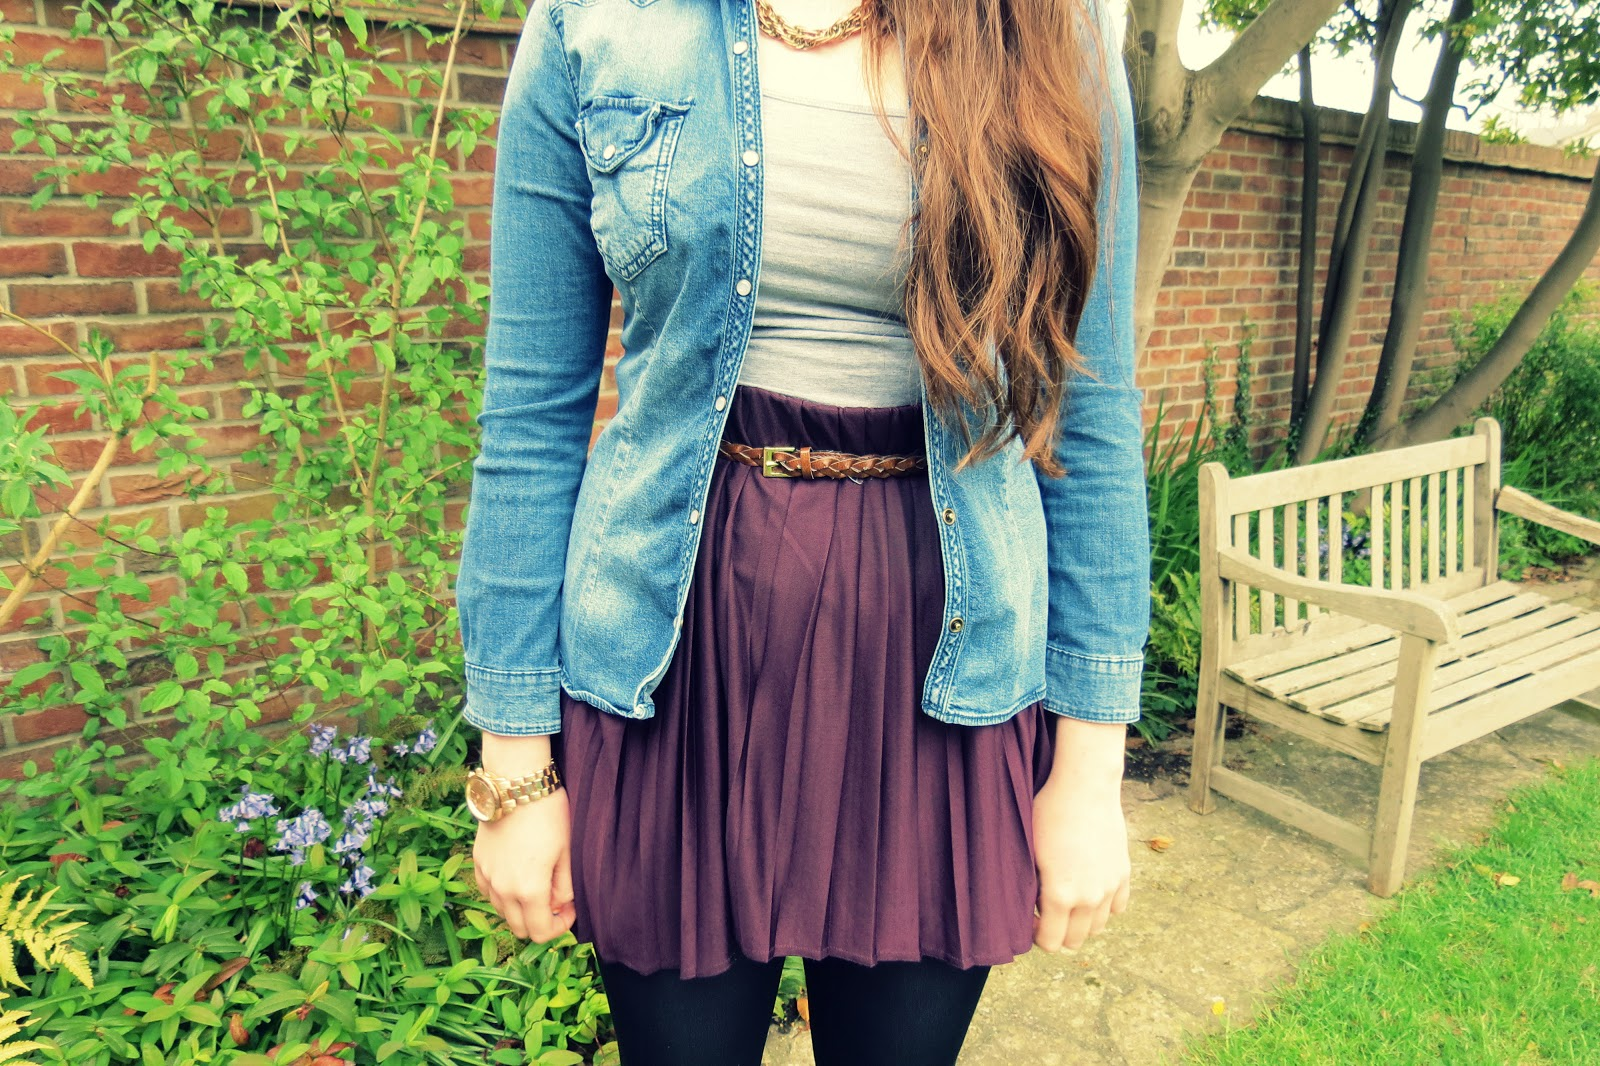 Fashion style Hi low outfit skirt ideas for girls